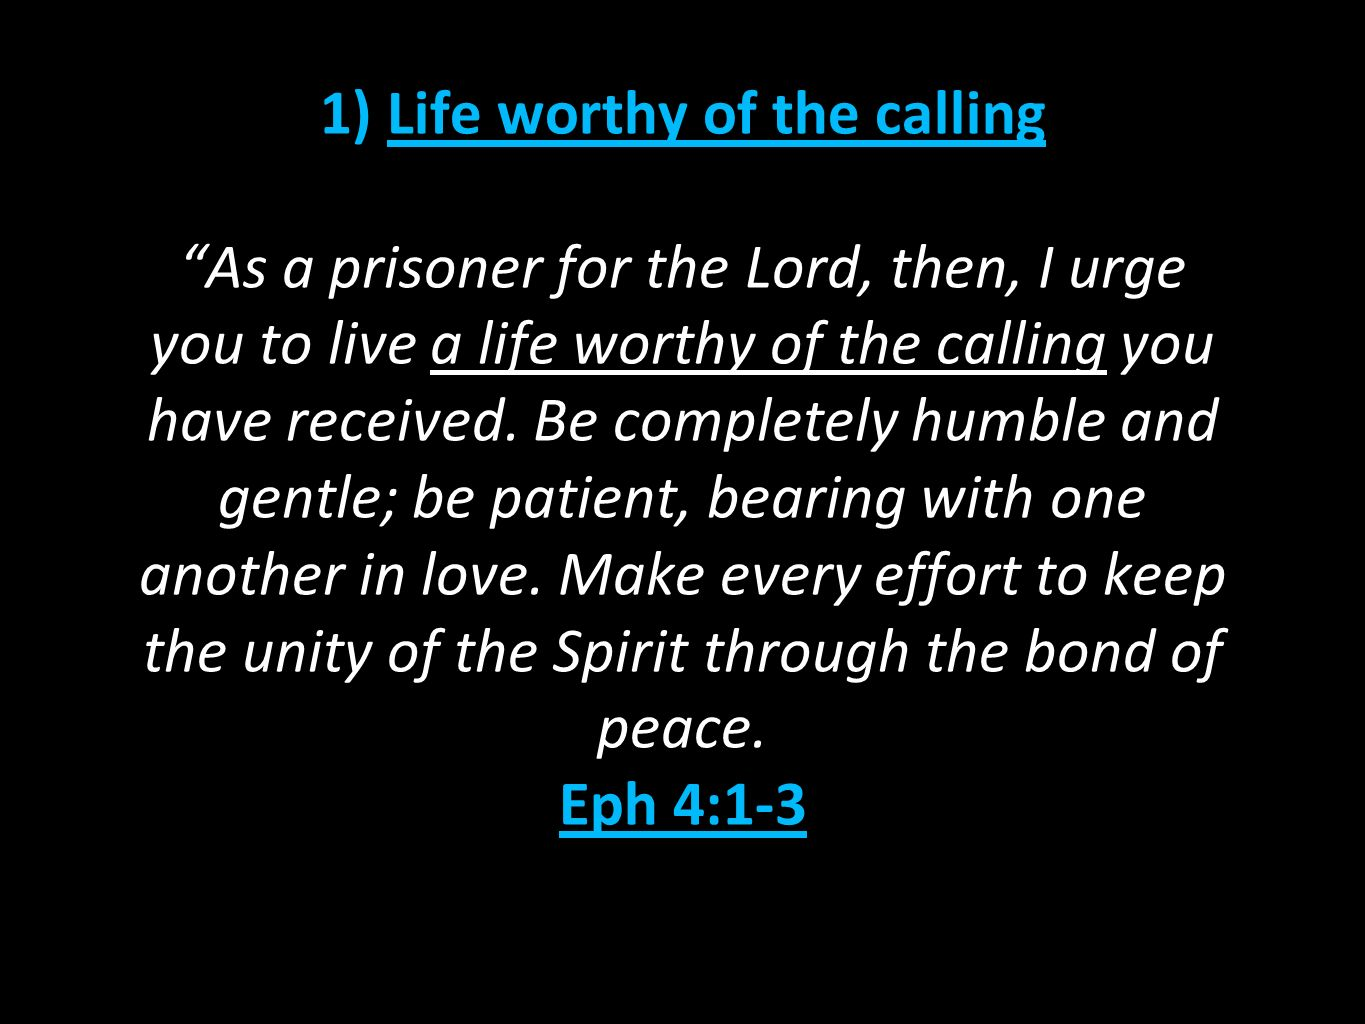 1) Life worthy of the calling As a prisoner for the Lord, then, I urge you to live a life worthy of the calling you have received.